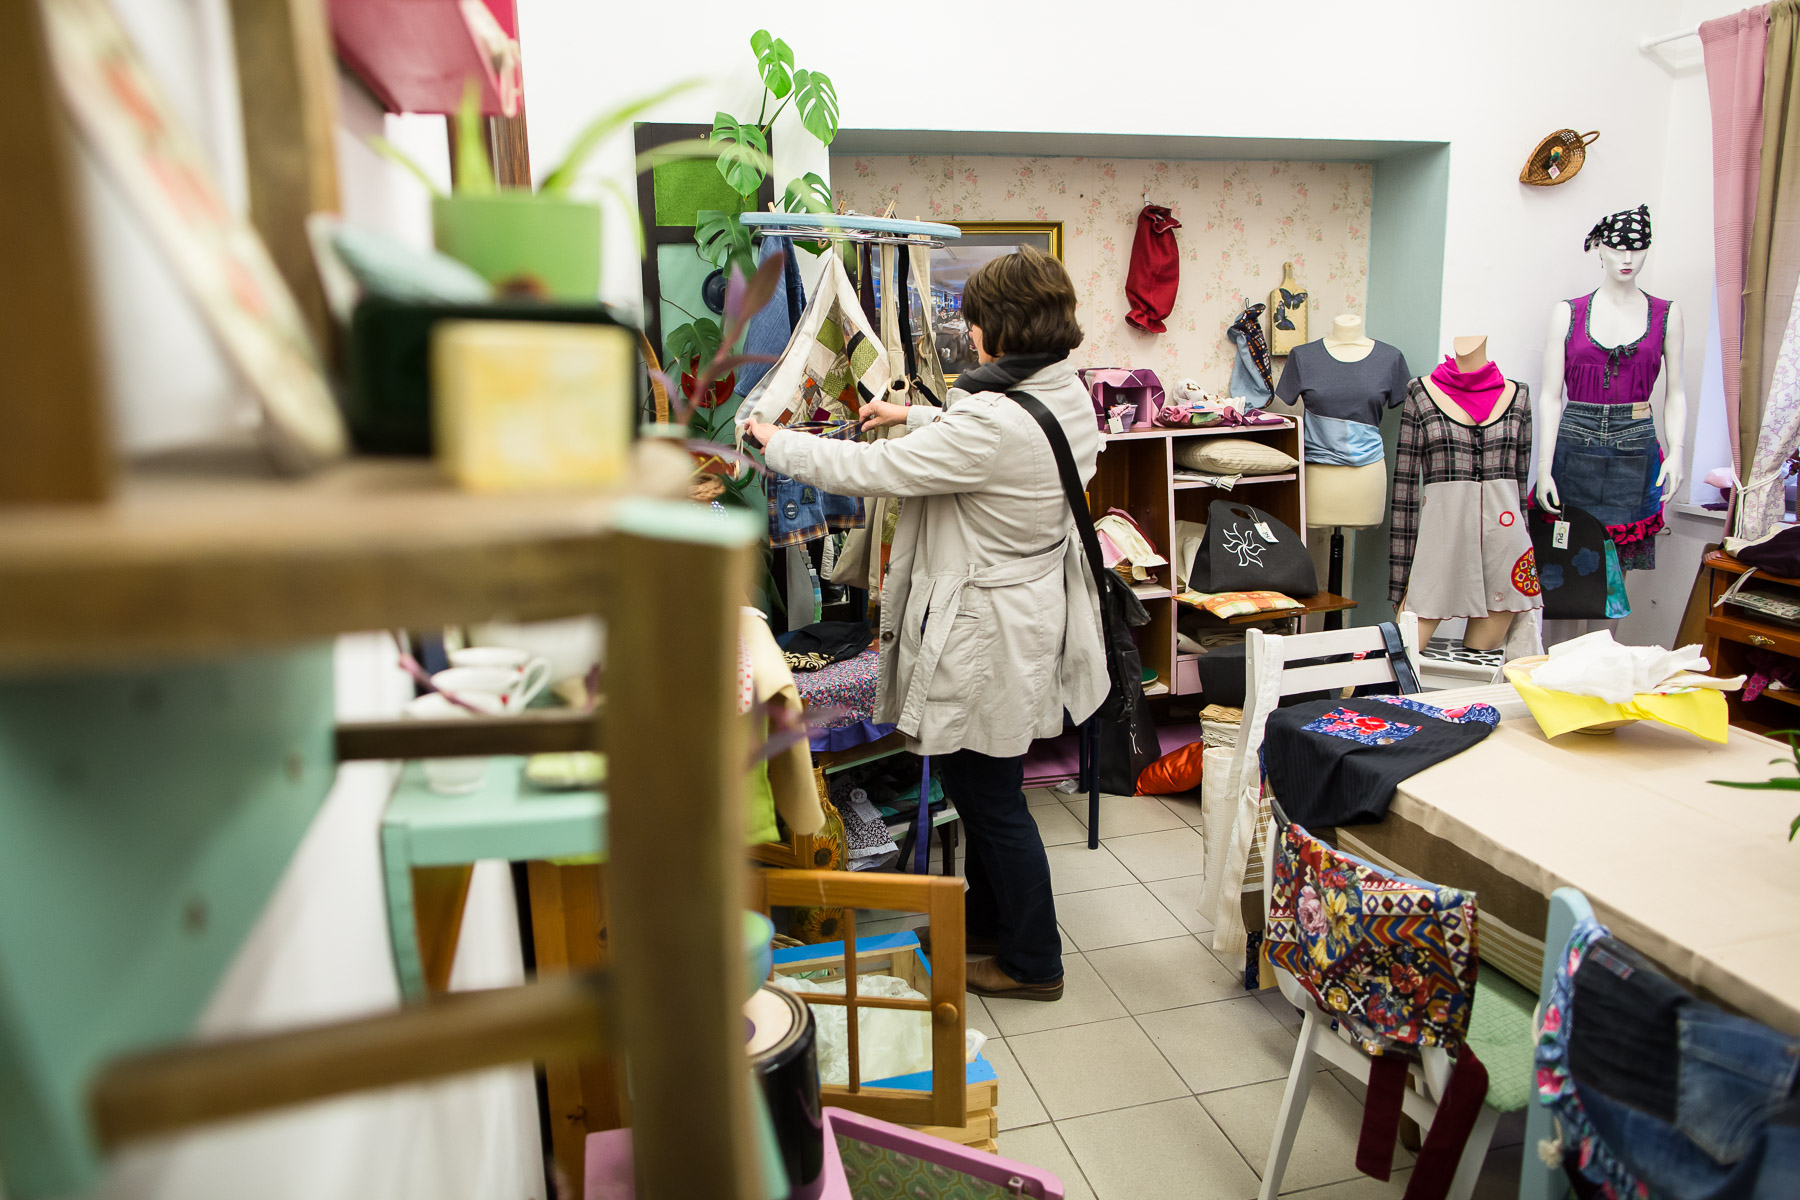 Customers browse through the Reuse center store on May 8, 2019.